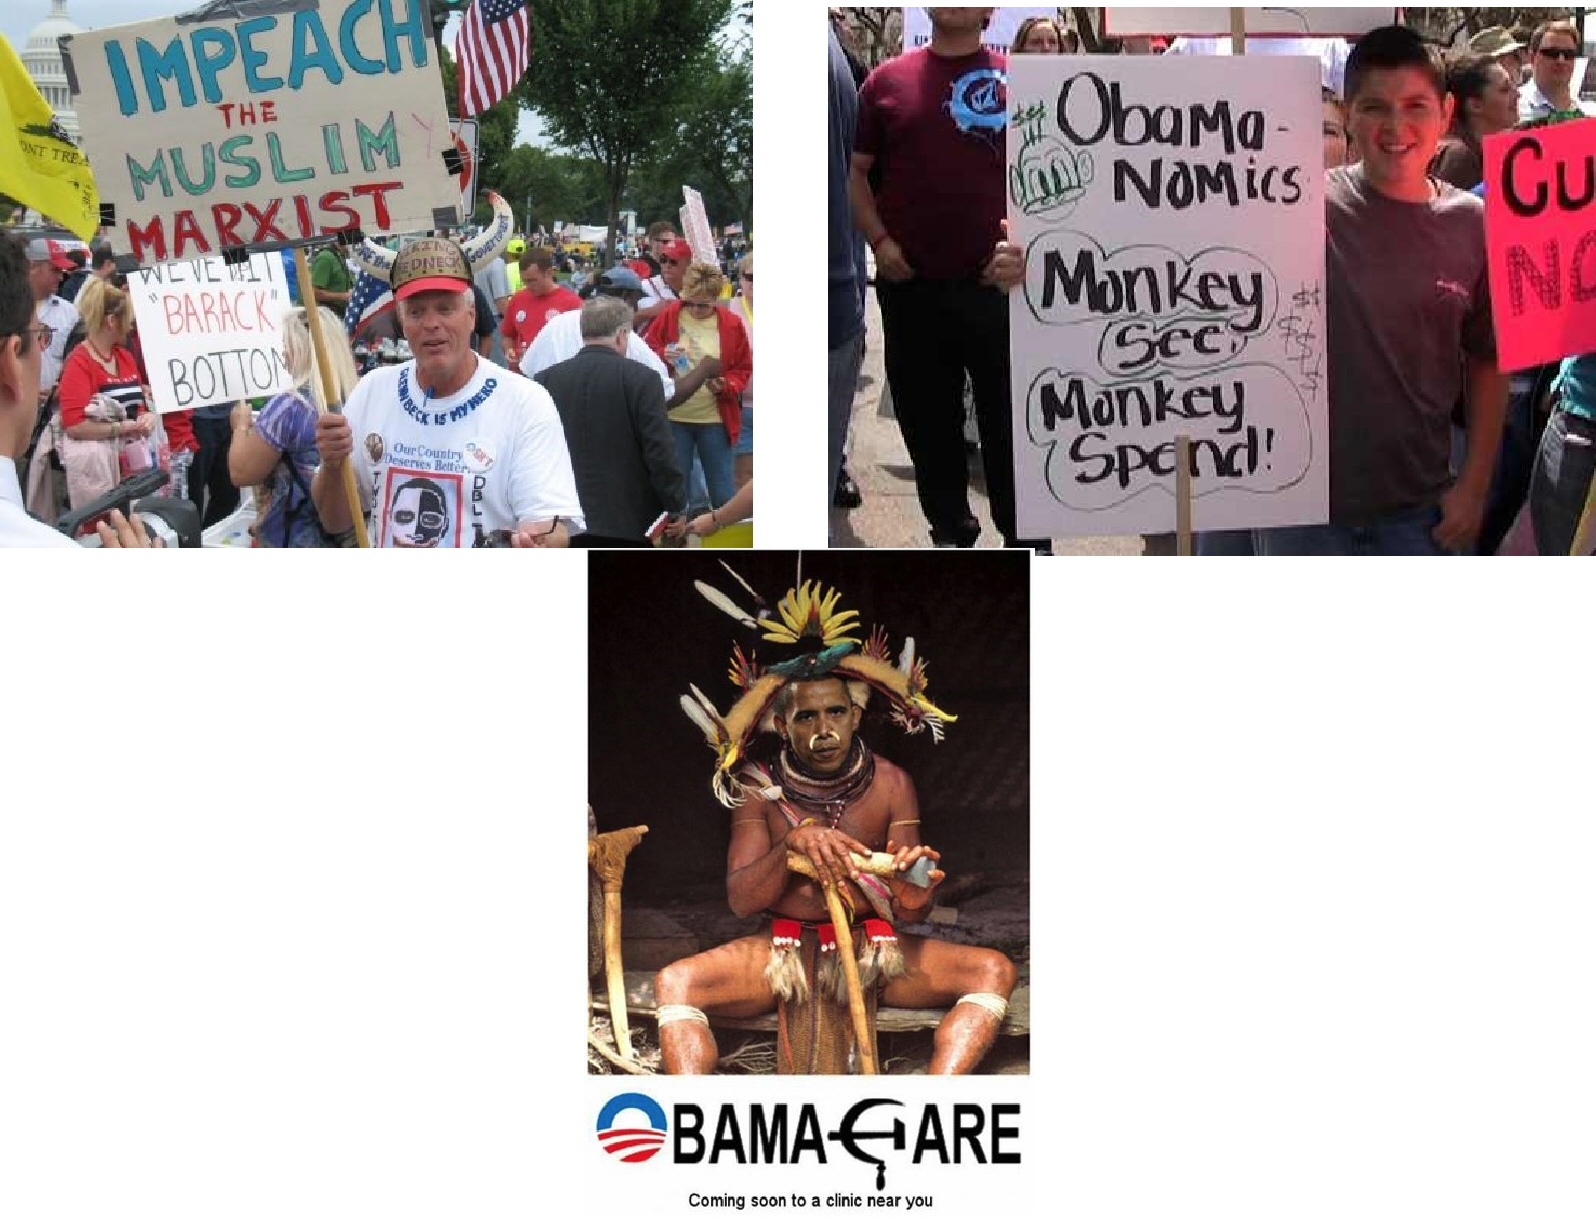 http://1.bp.blogspot.com/_mupm2BmIjtc/S8NxCZXumXI/AAAAAAAALfw/M5sg8SL2hA4/s1600/tea+party+racist+signs.jpg